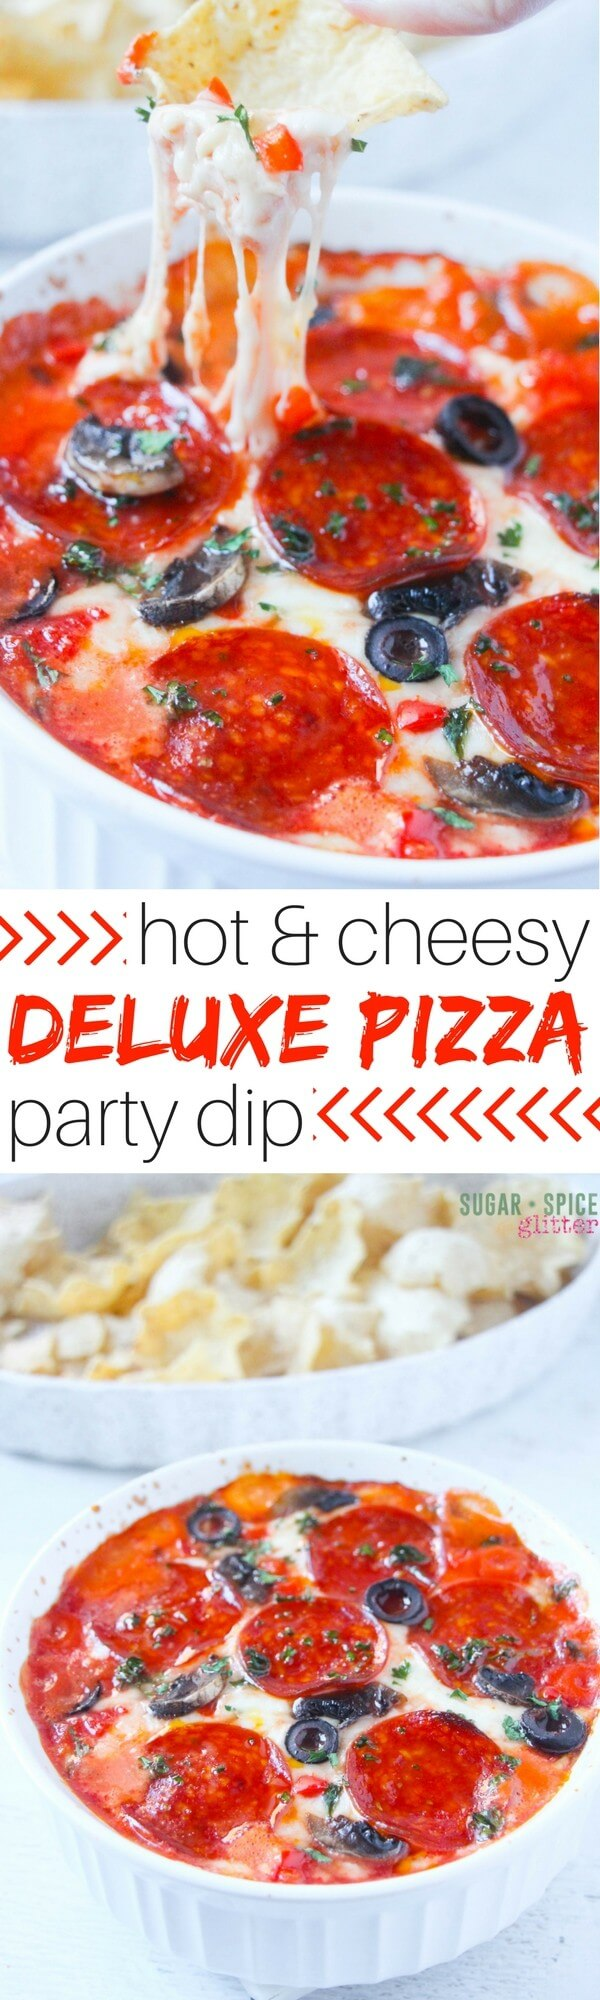 Grab your free printable for our hot pizza dip recipe: